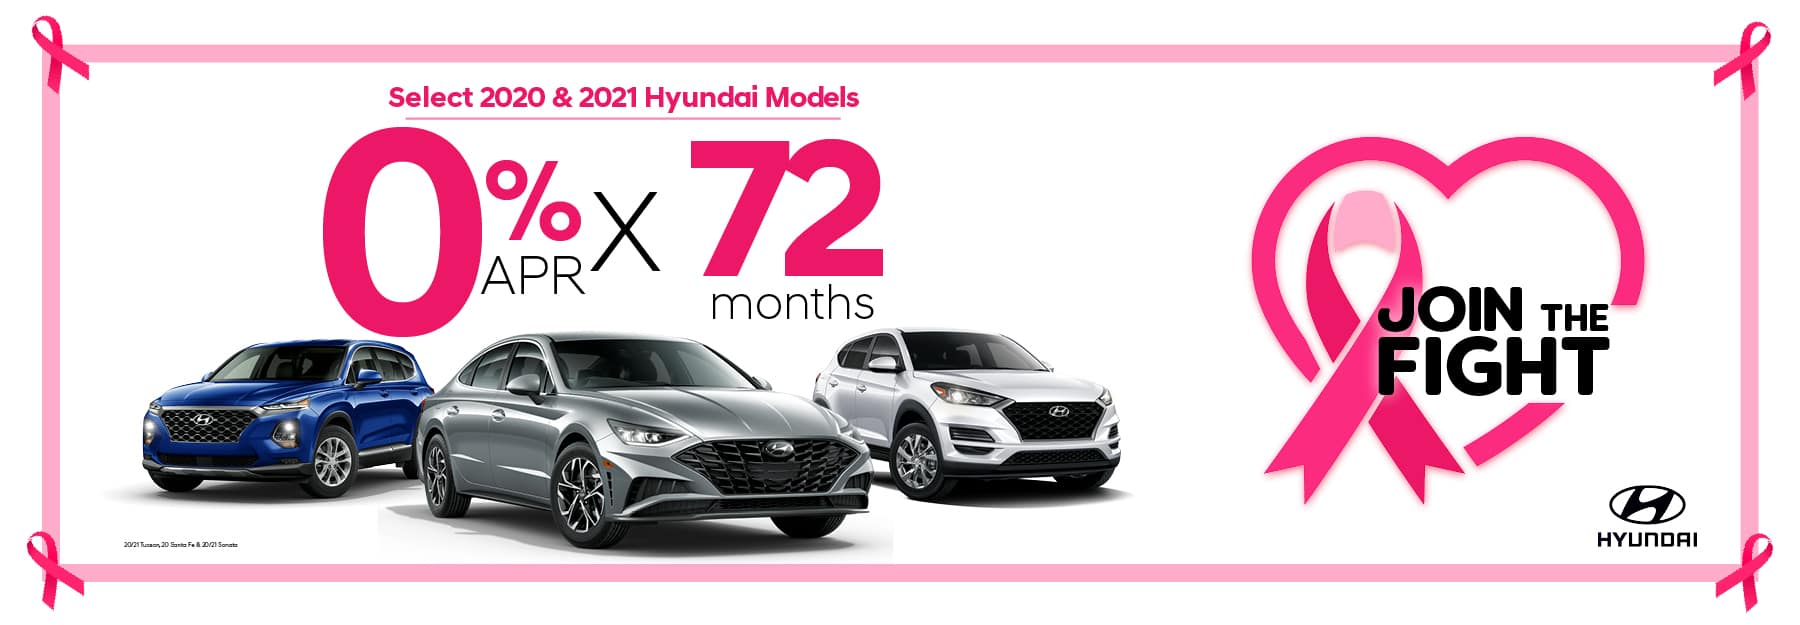 0% APR for 72 months on select 2020 & 2021 Hyundai Models